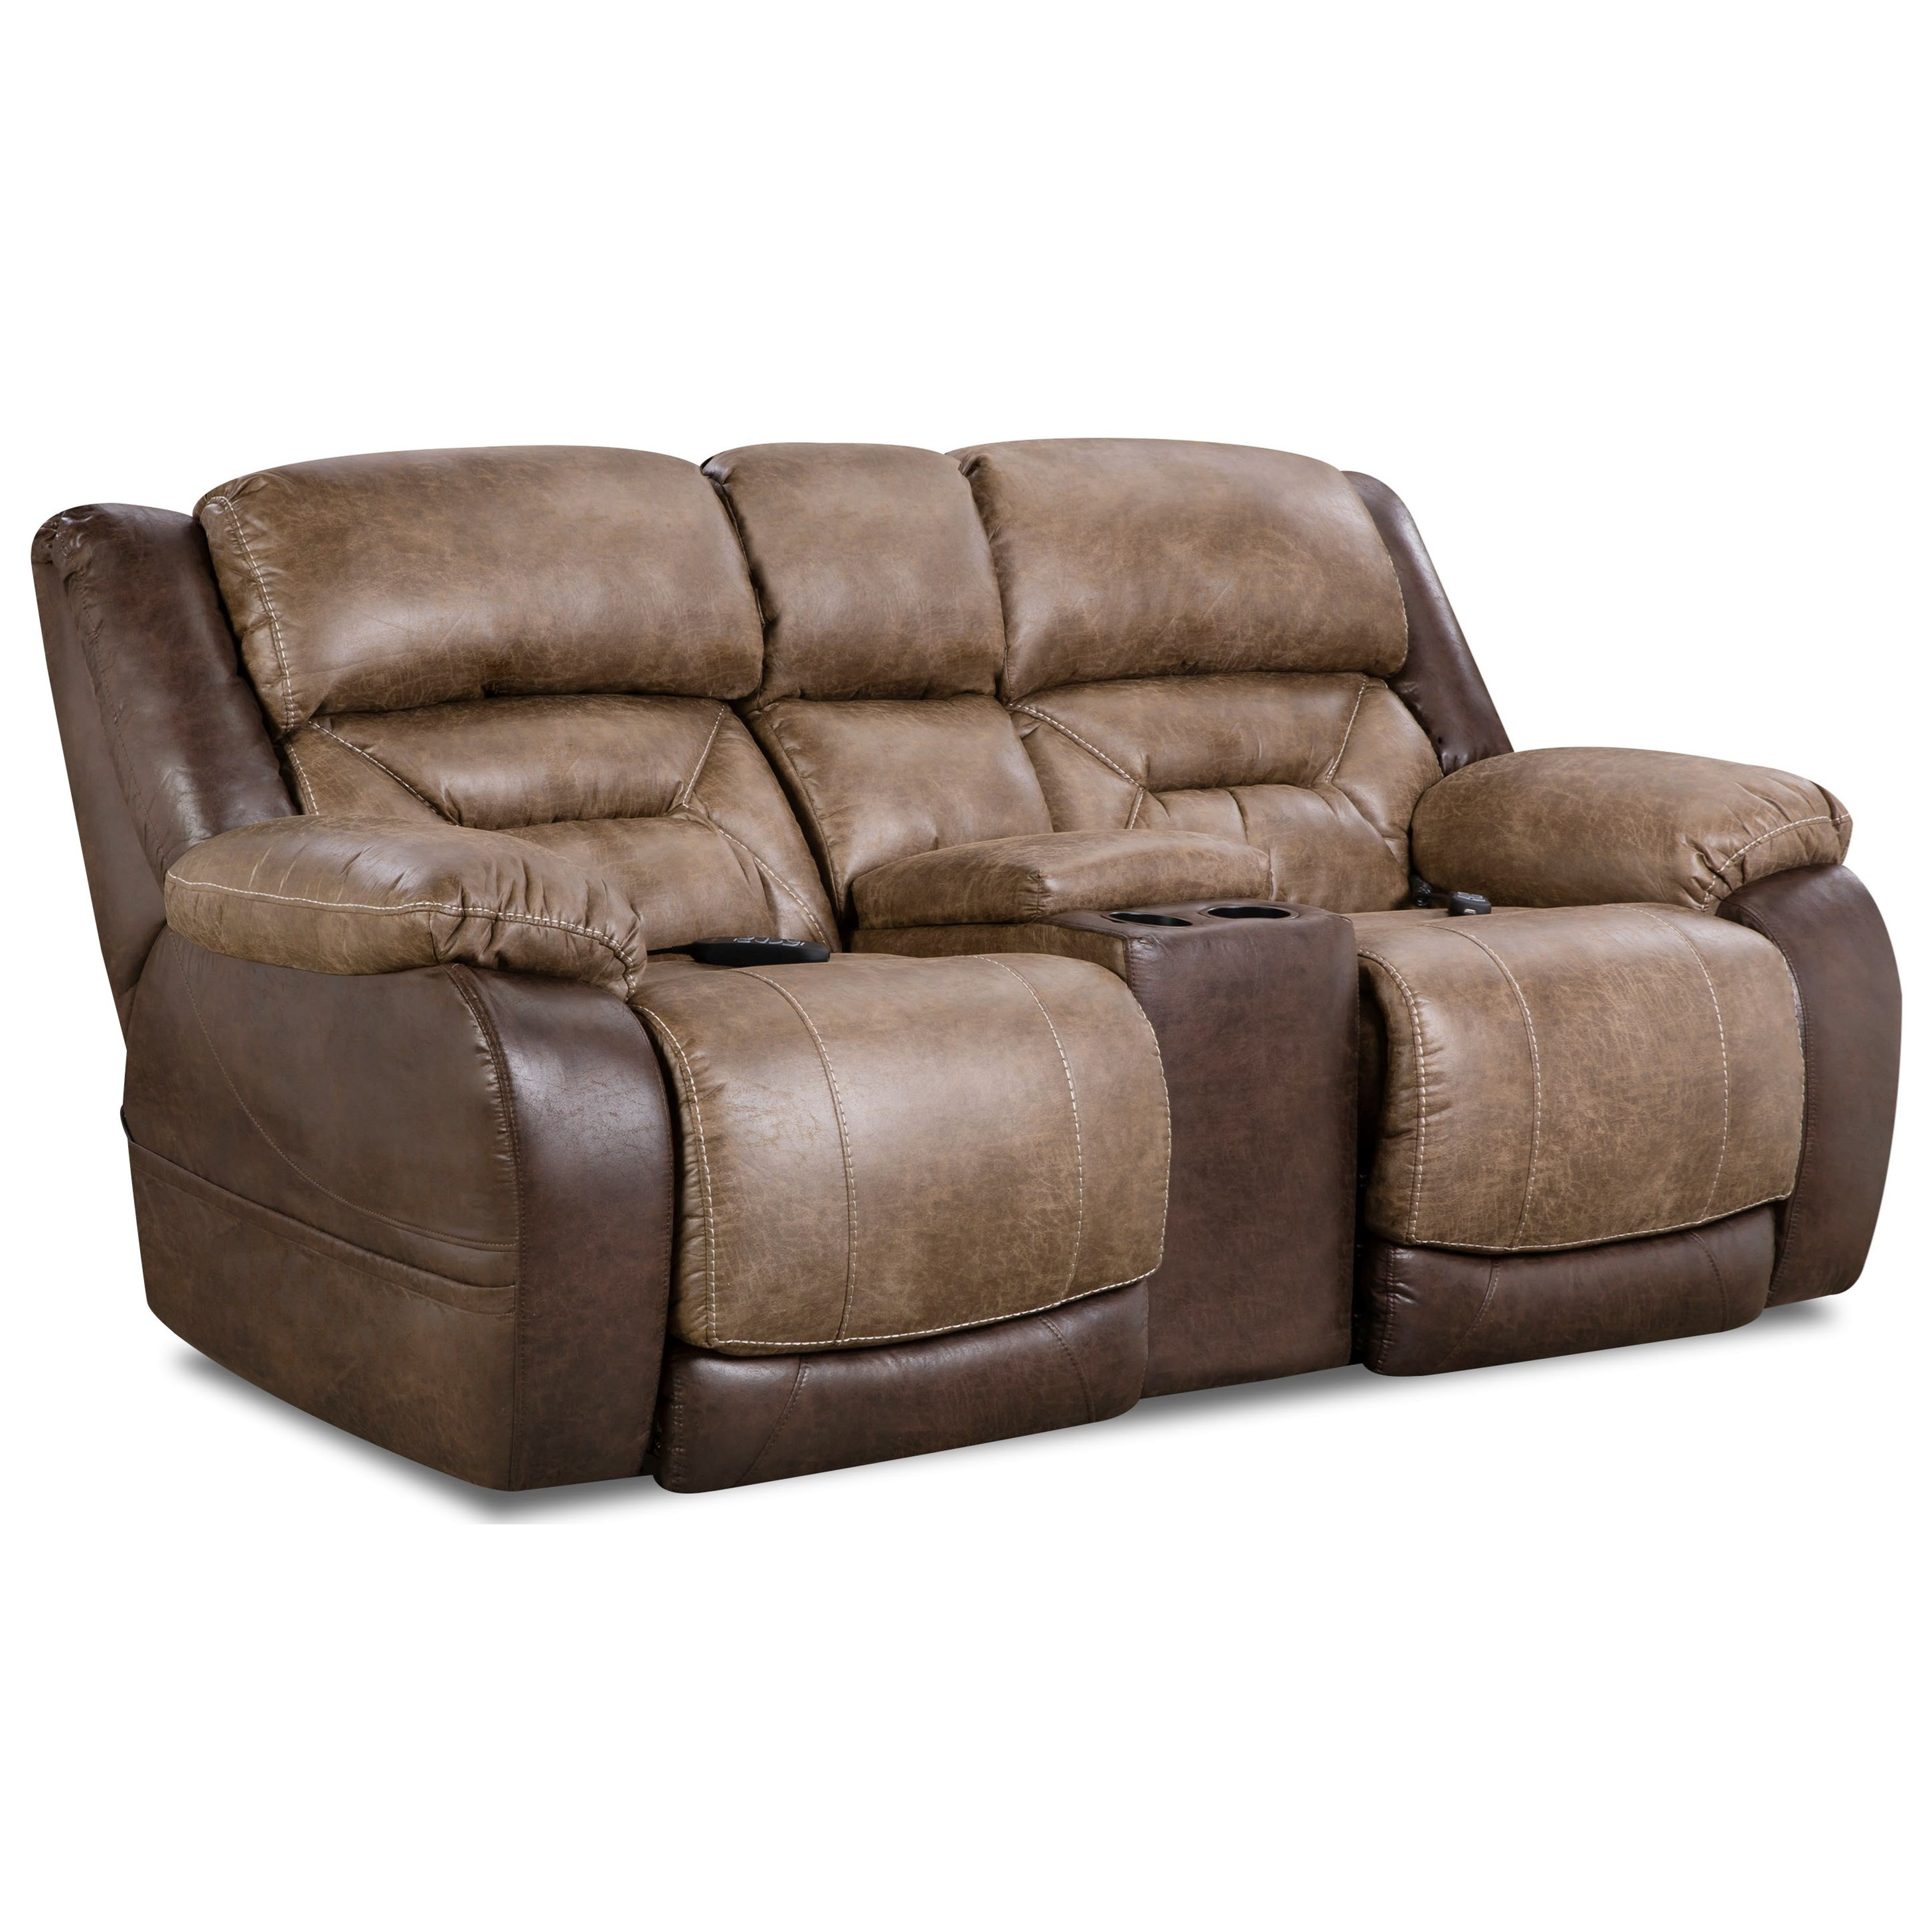 168 Collection Power Console Loveseat by HomeStretch at Bullard Furniture